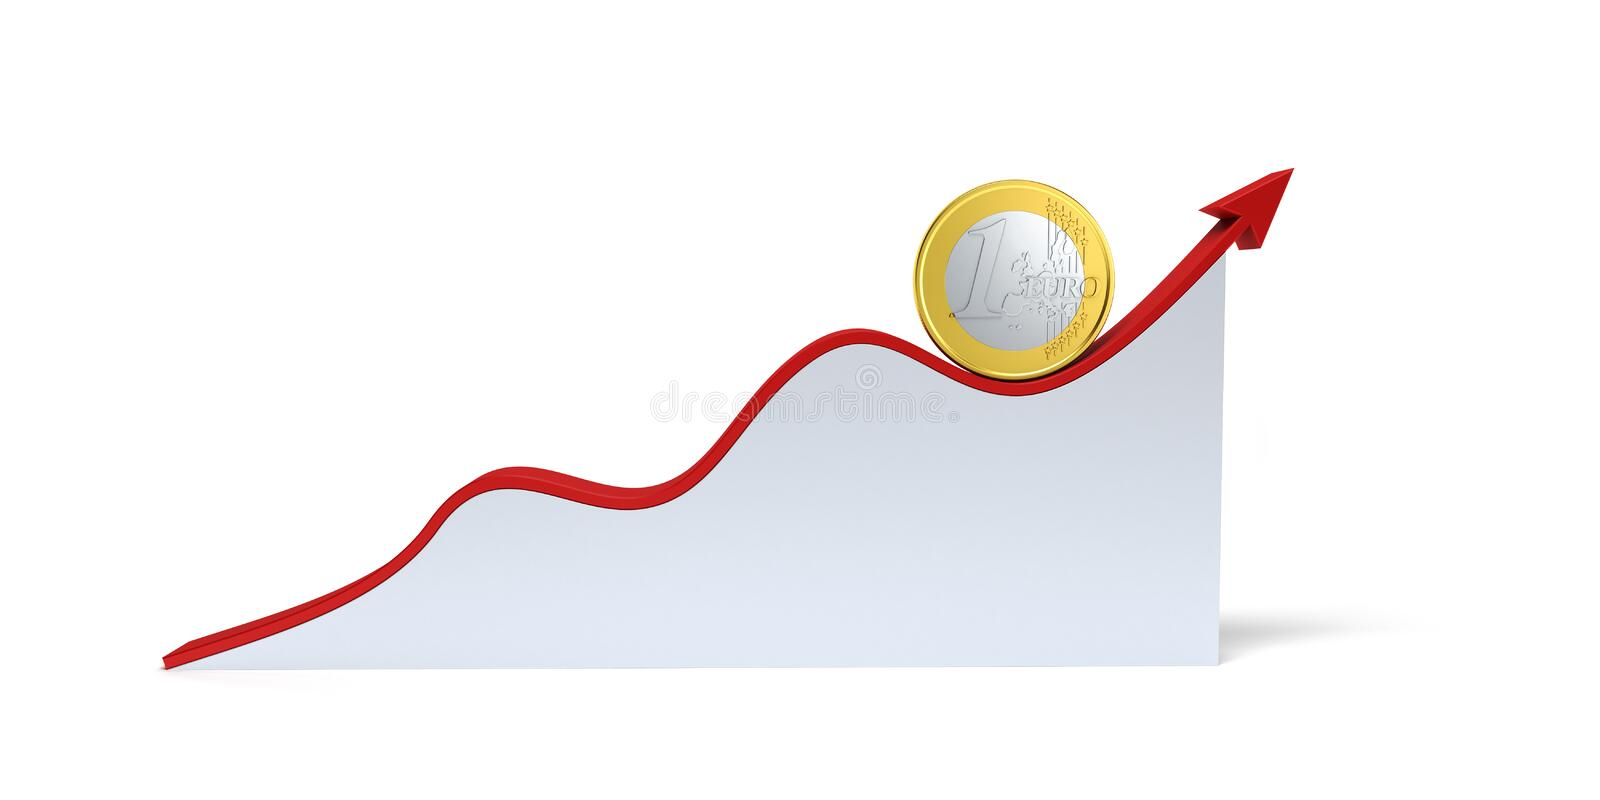 Changes in the euro exchange rate stock illustration